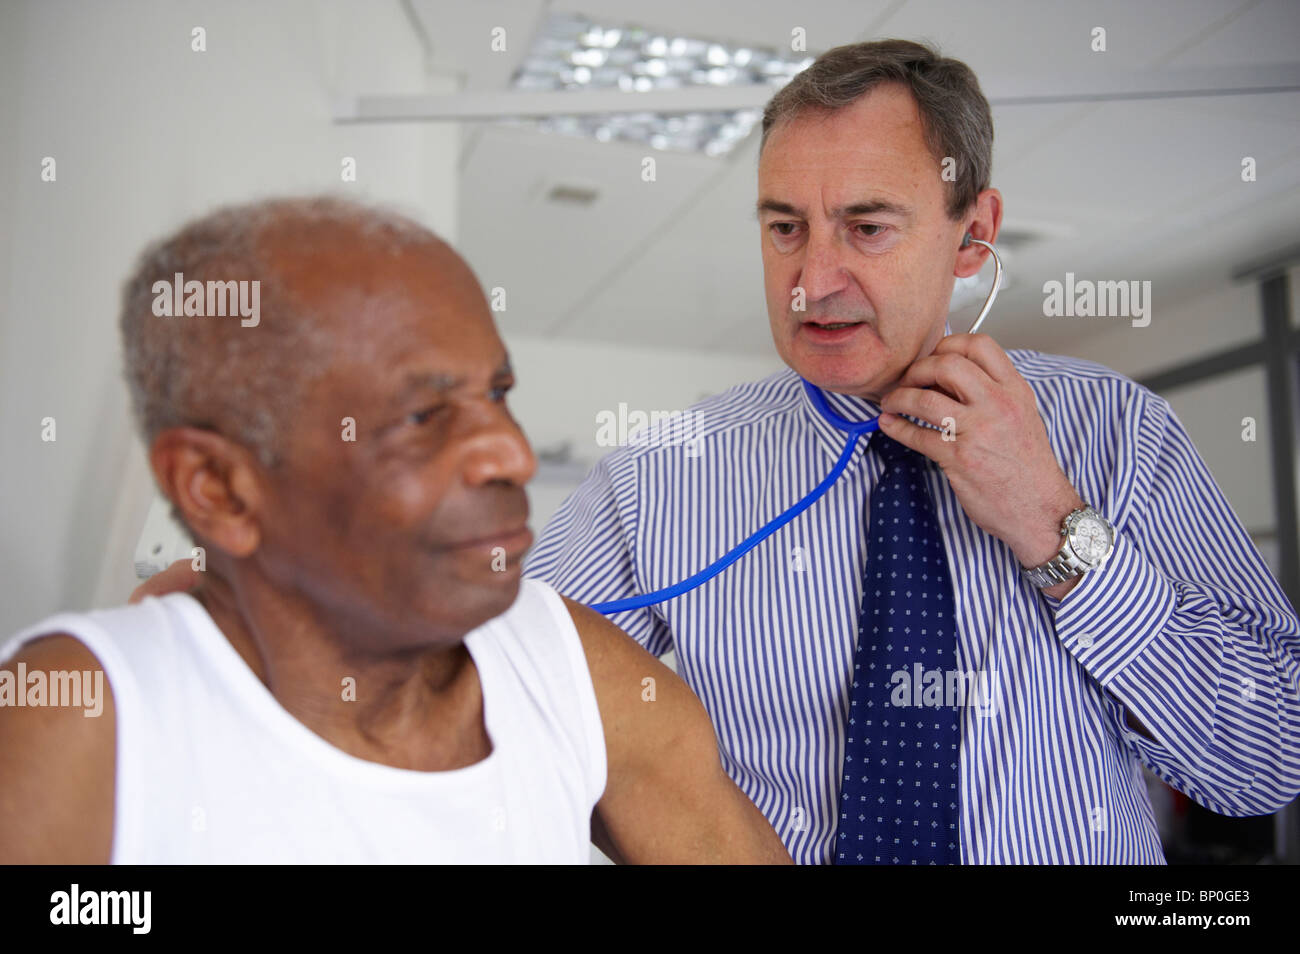 Doctor with stethoscope with elderly man Stock Photo